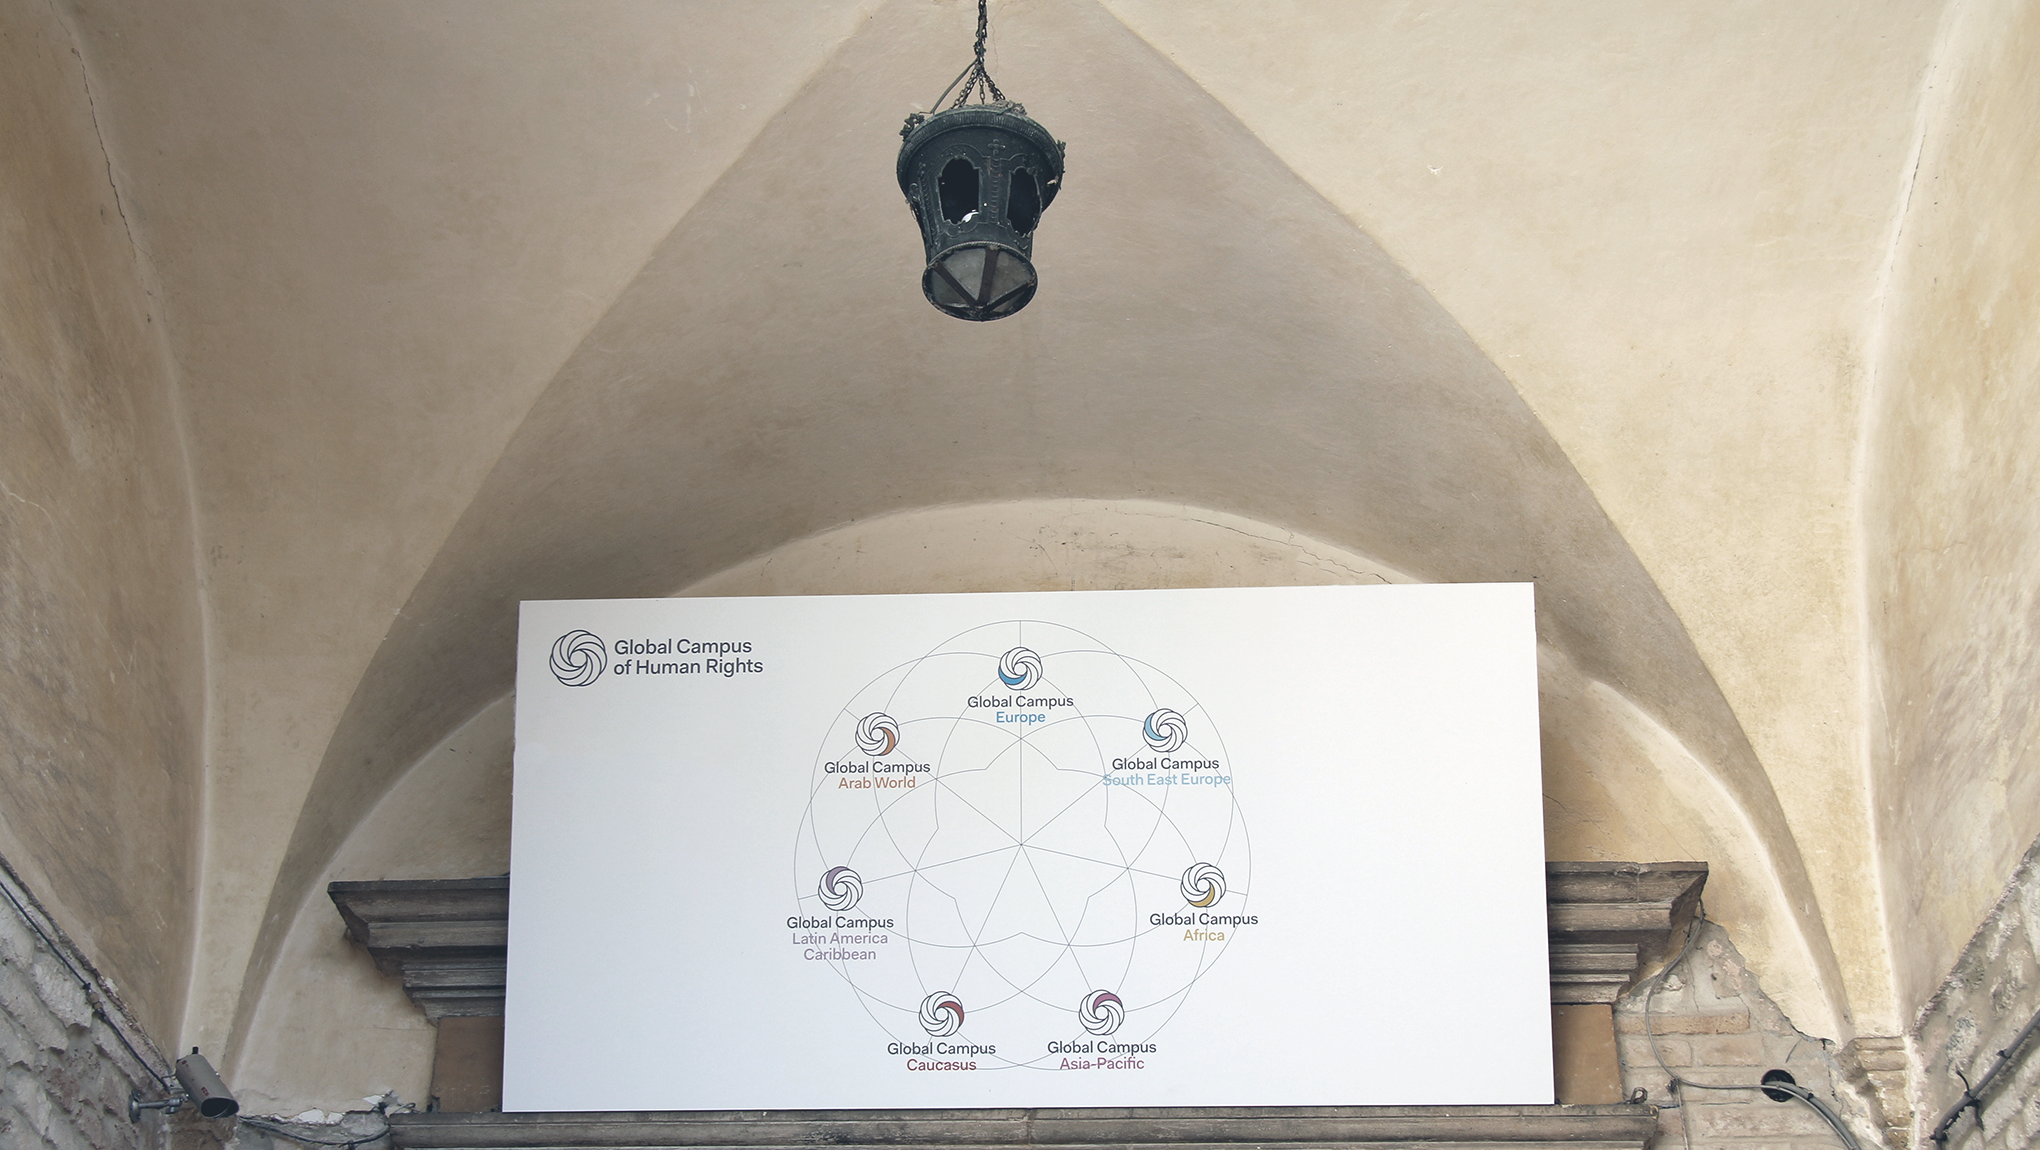 Transforming EIUC into the Global Campus of Human Rights